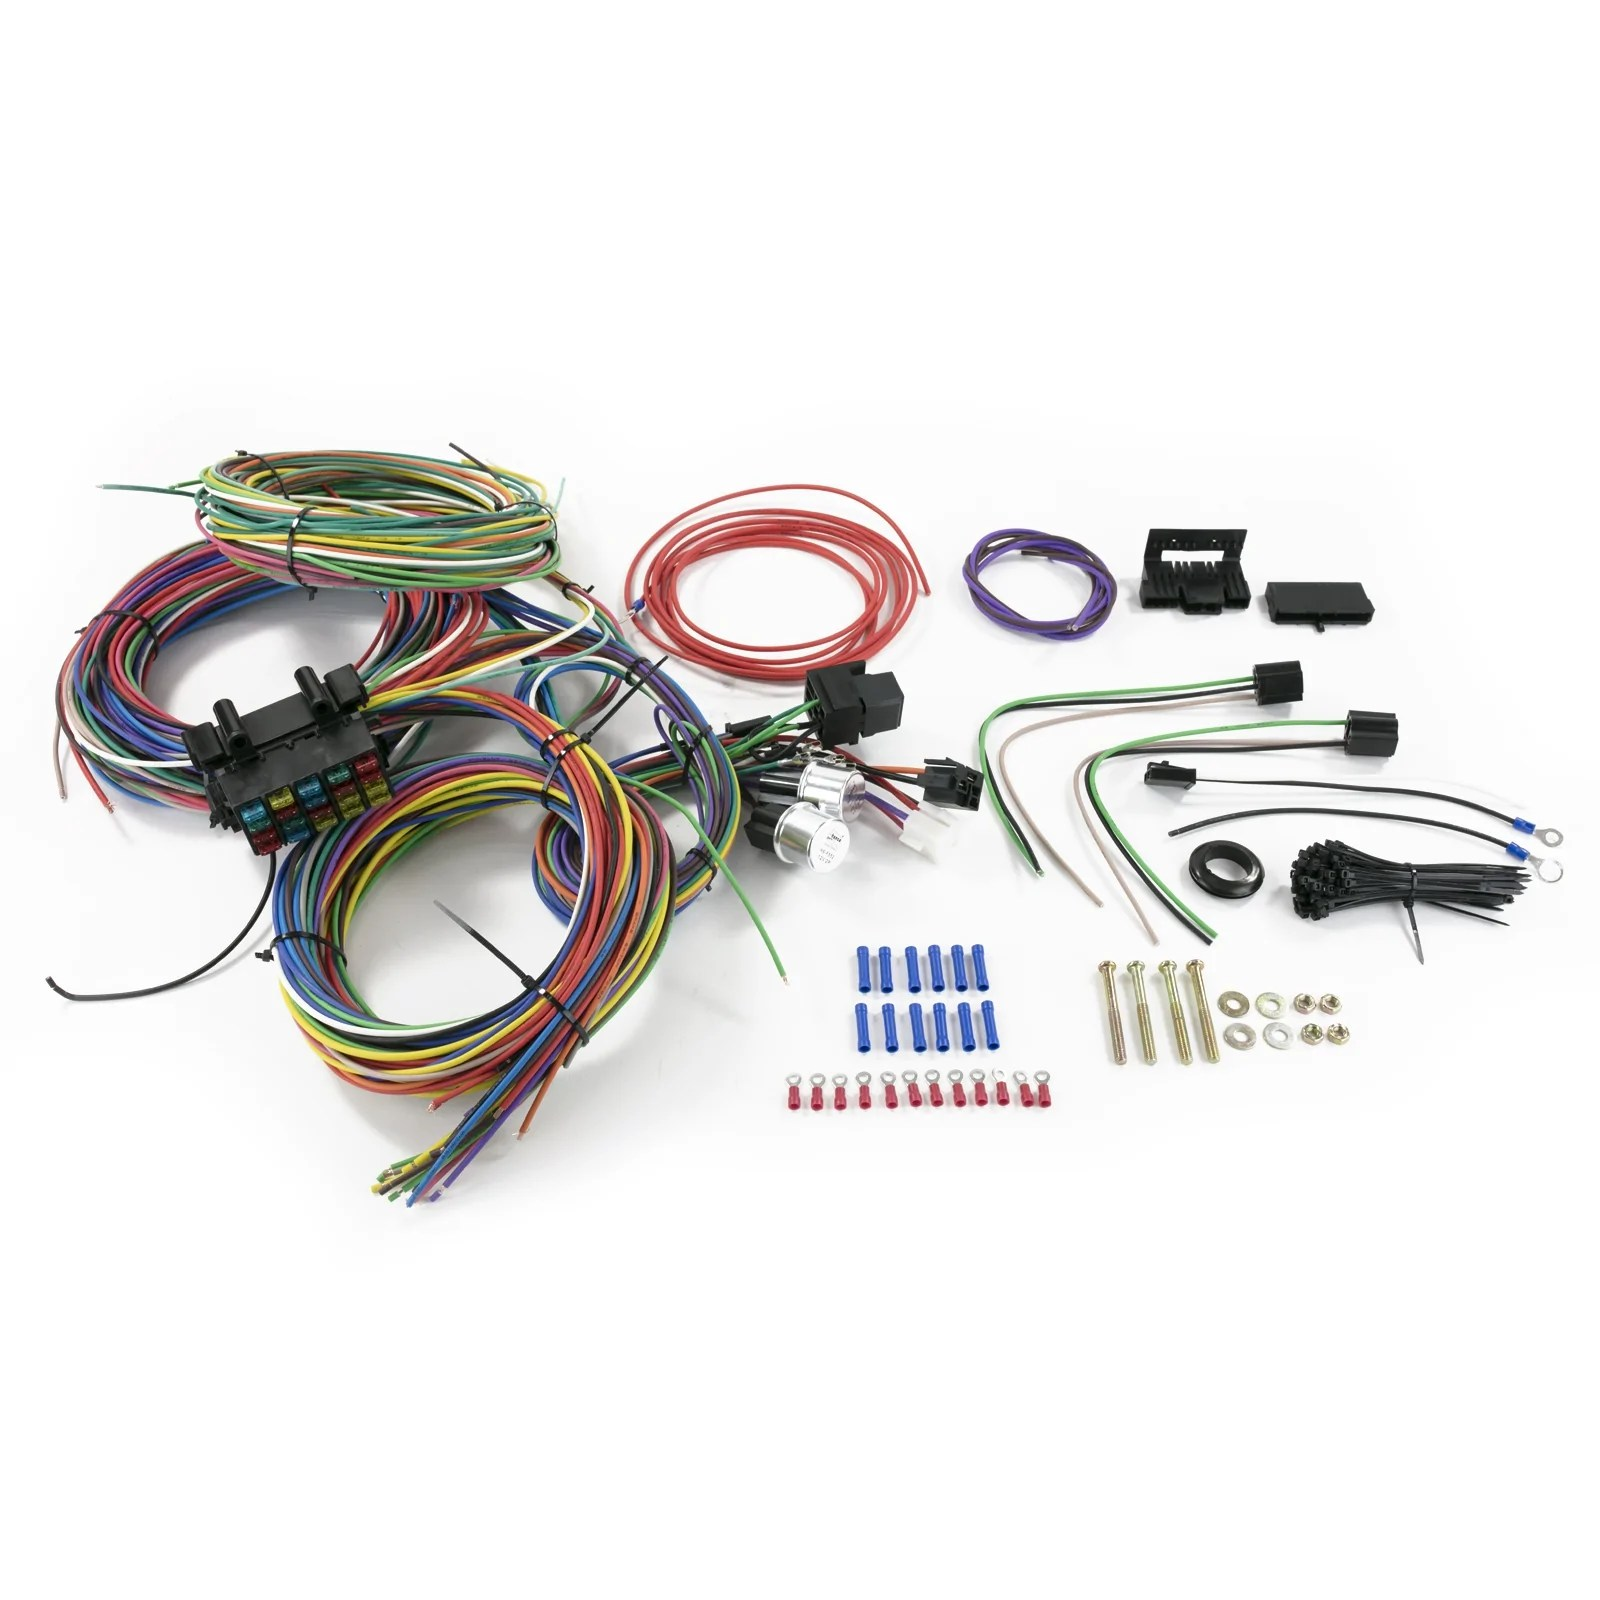 small resolution of wiring harness universal 240z 260z 280z 510 z car depot 280z ez wiring harness 280z wiring harness